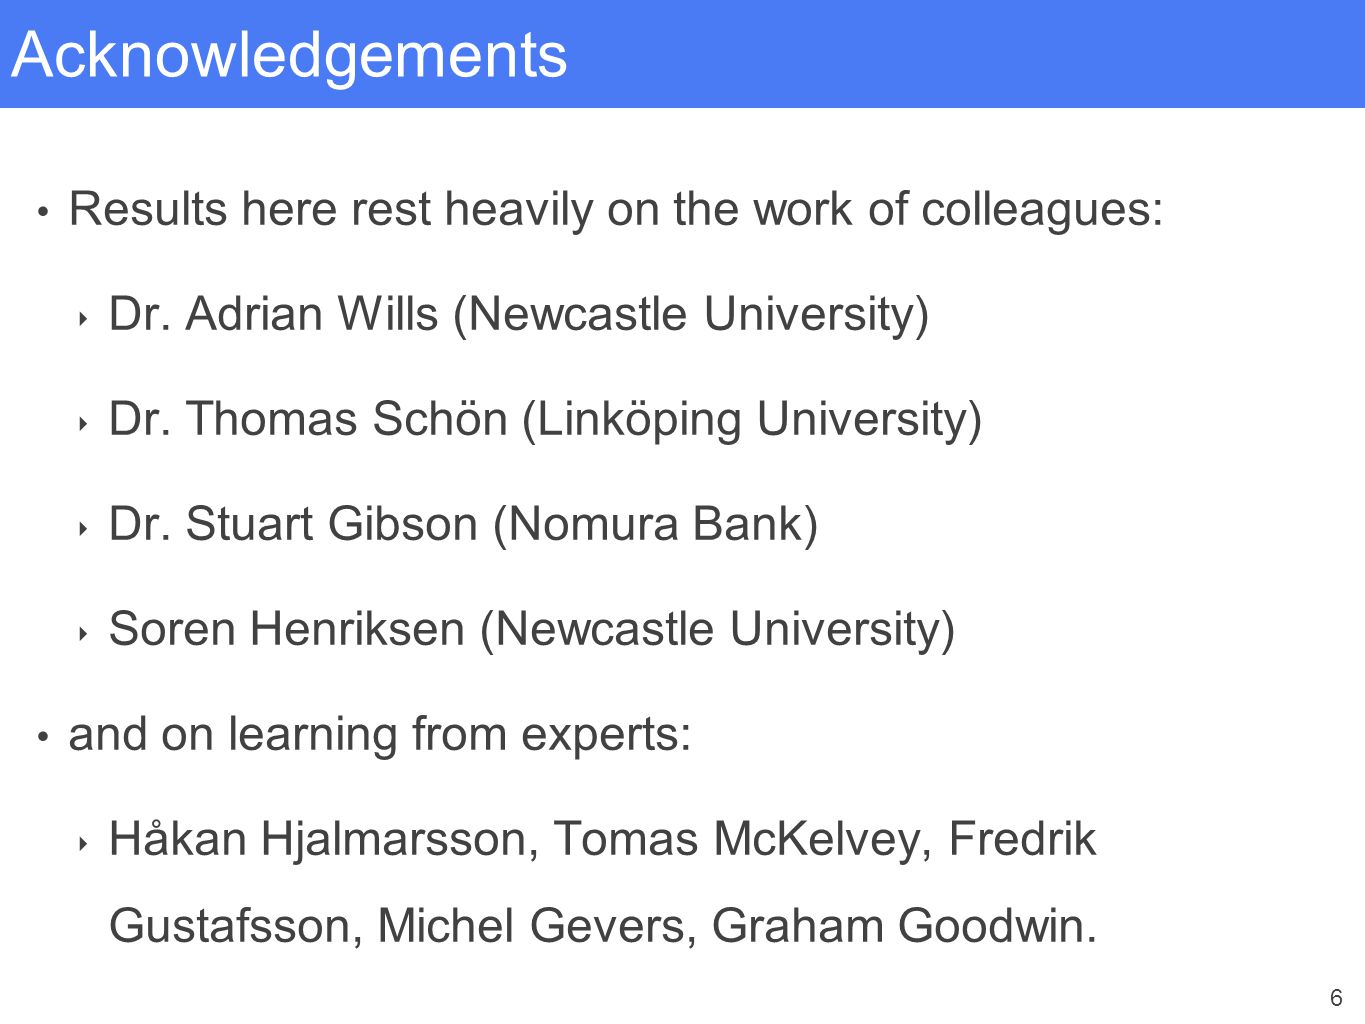 6 Acknowledgements Results here rest heavily on the work of colleagues: ‣ Dr. Adrian Wills (Newcastle University) ‣ Dr. Thomas Schön (Linköping Univer